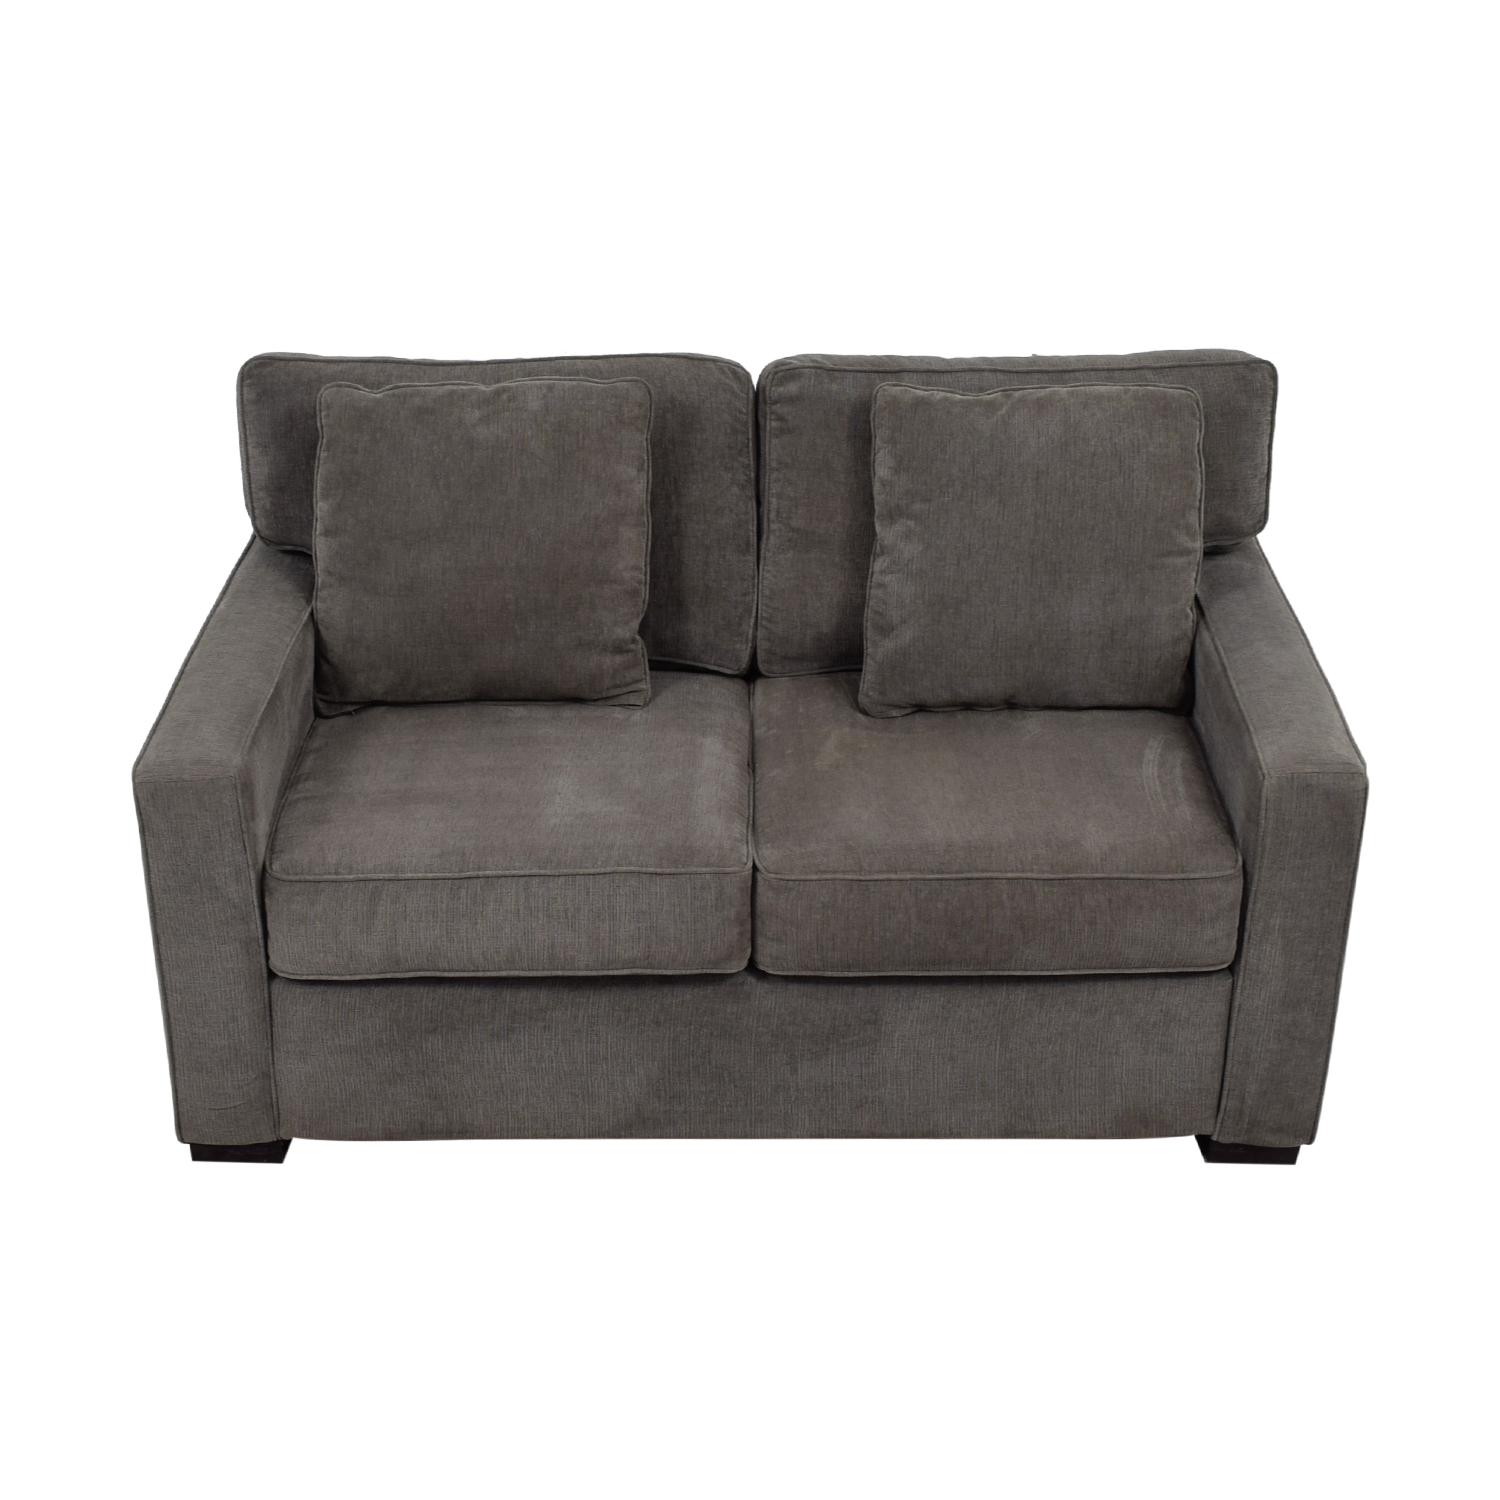 buy Macy's Radley Grey Loveseat Macy's